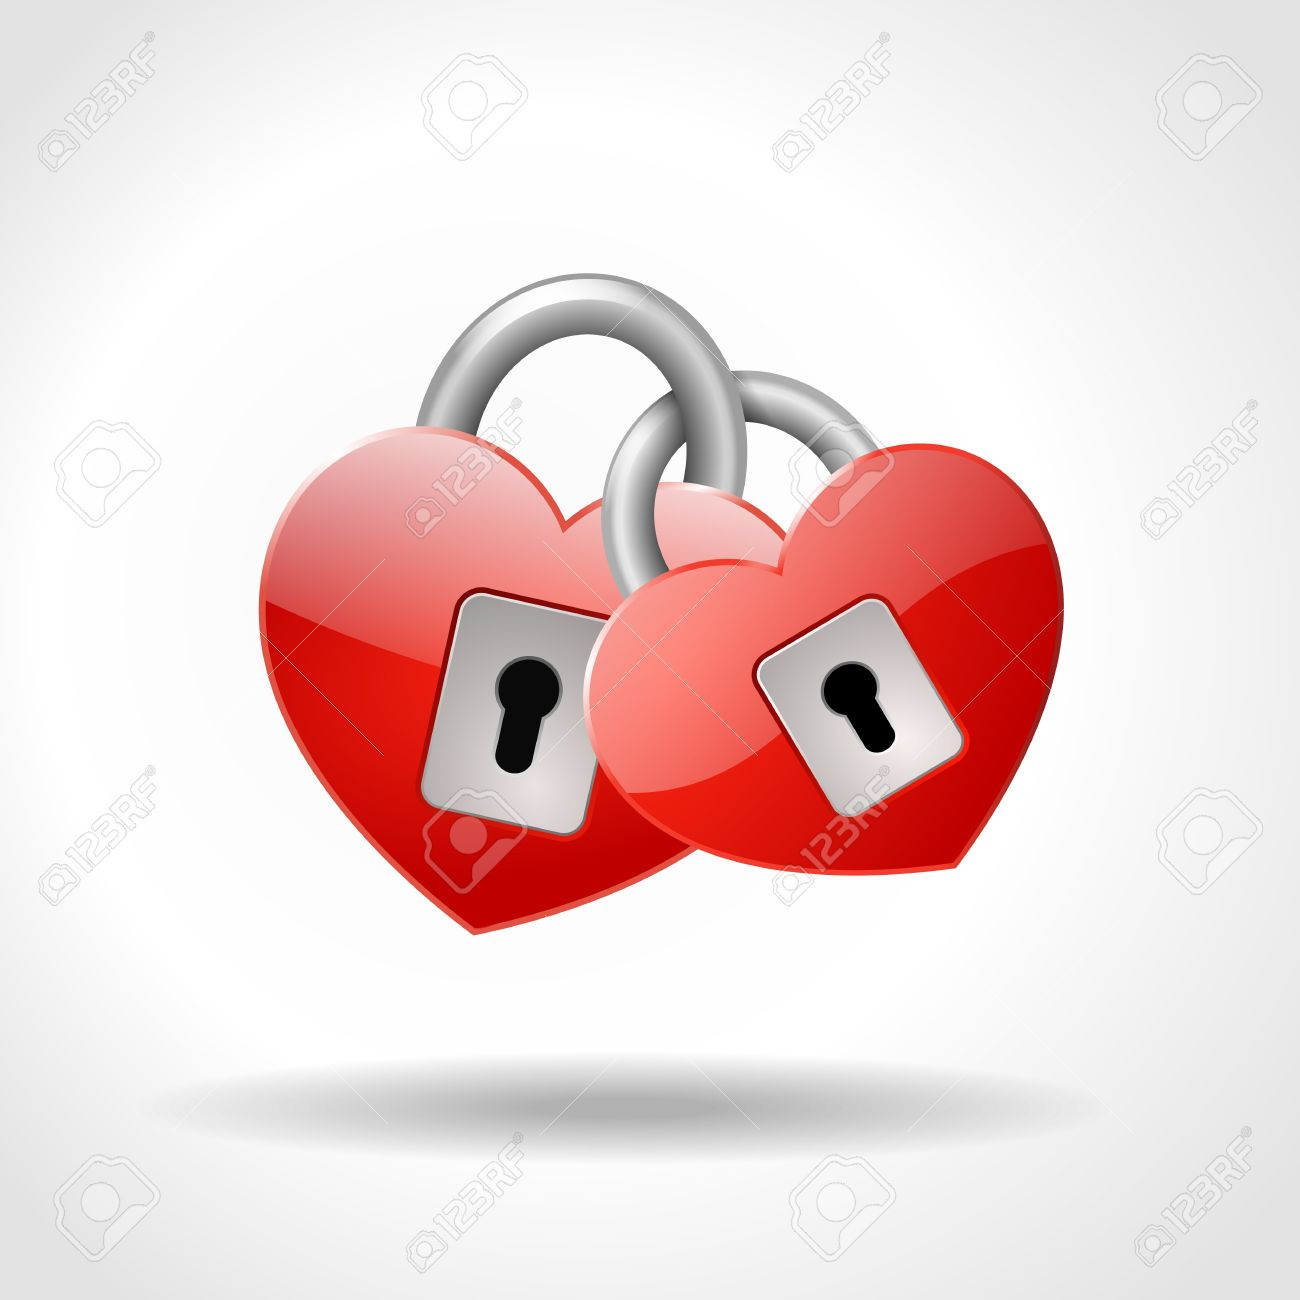 True love clipart download.